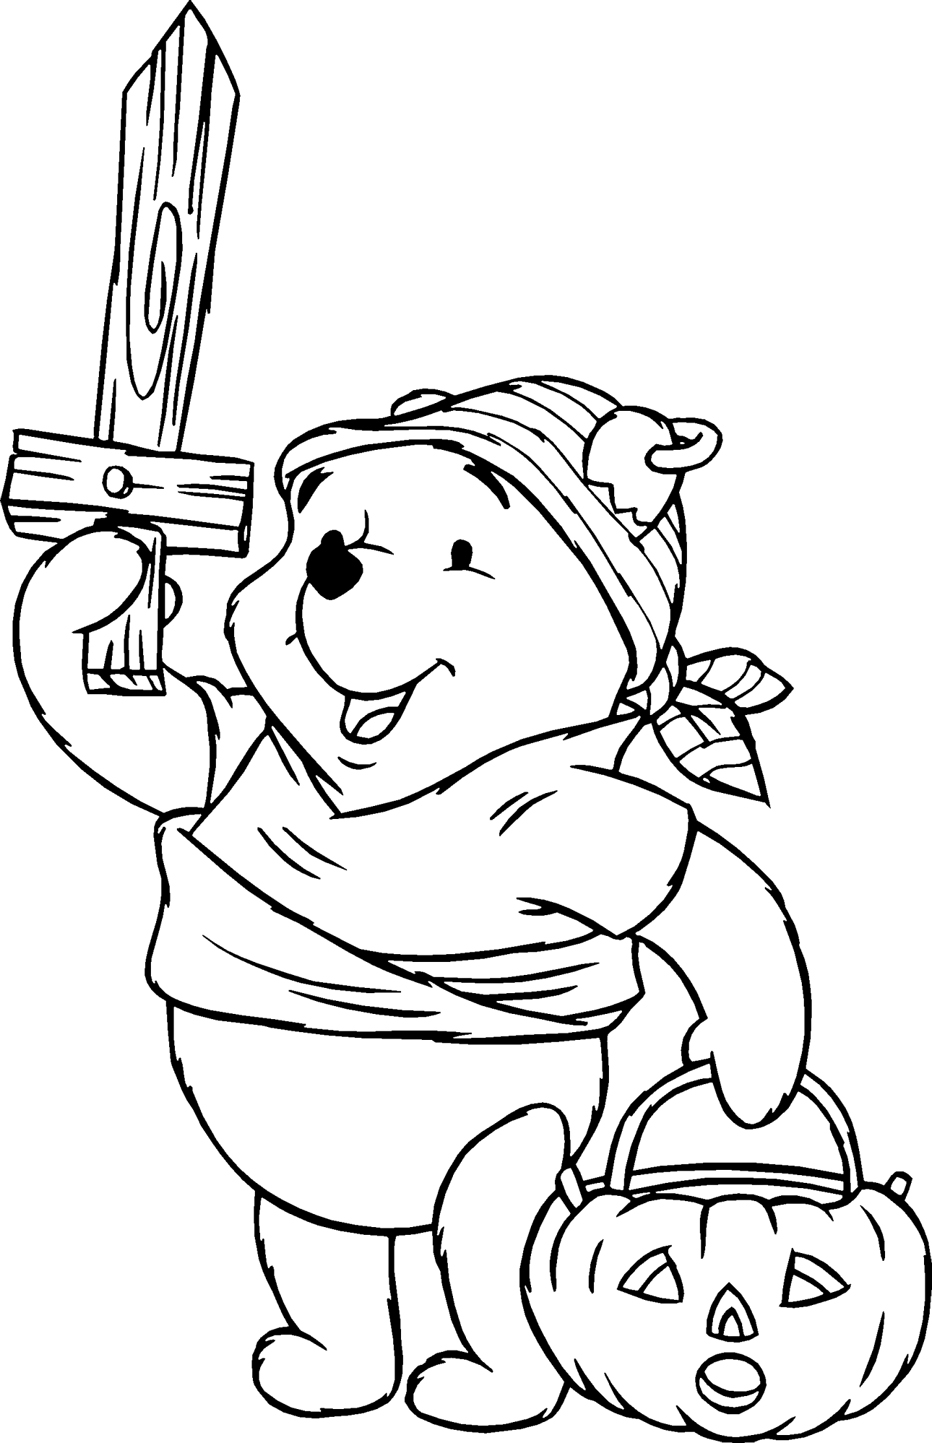 Winnie the pooh coloring pages learn to coloring for Winnie the pooh coloring pages free